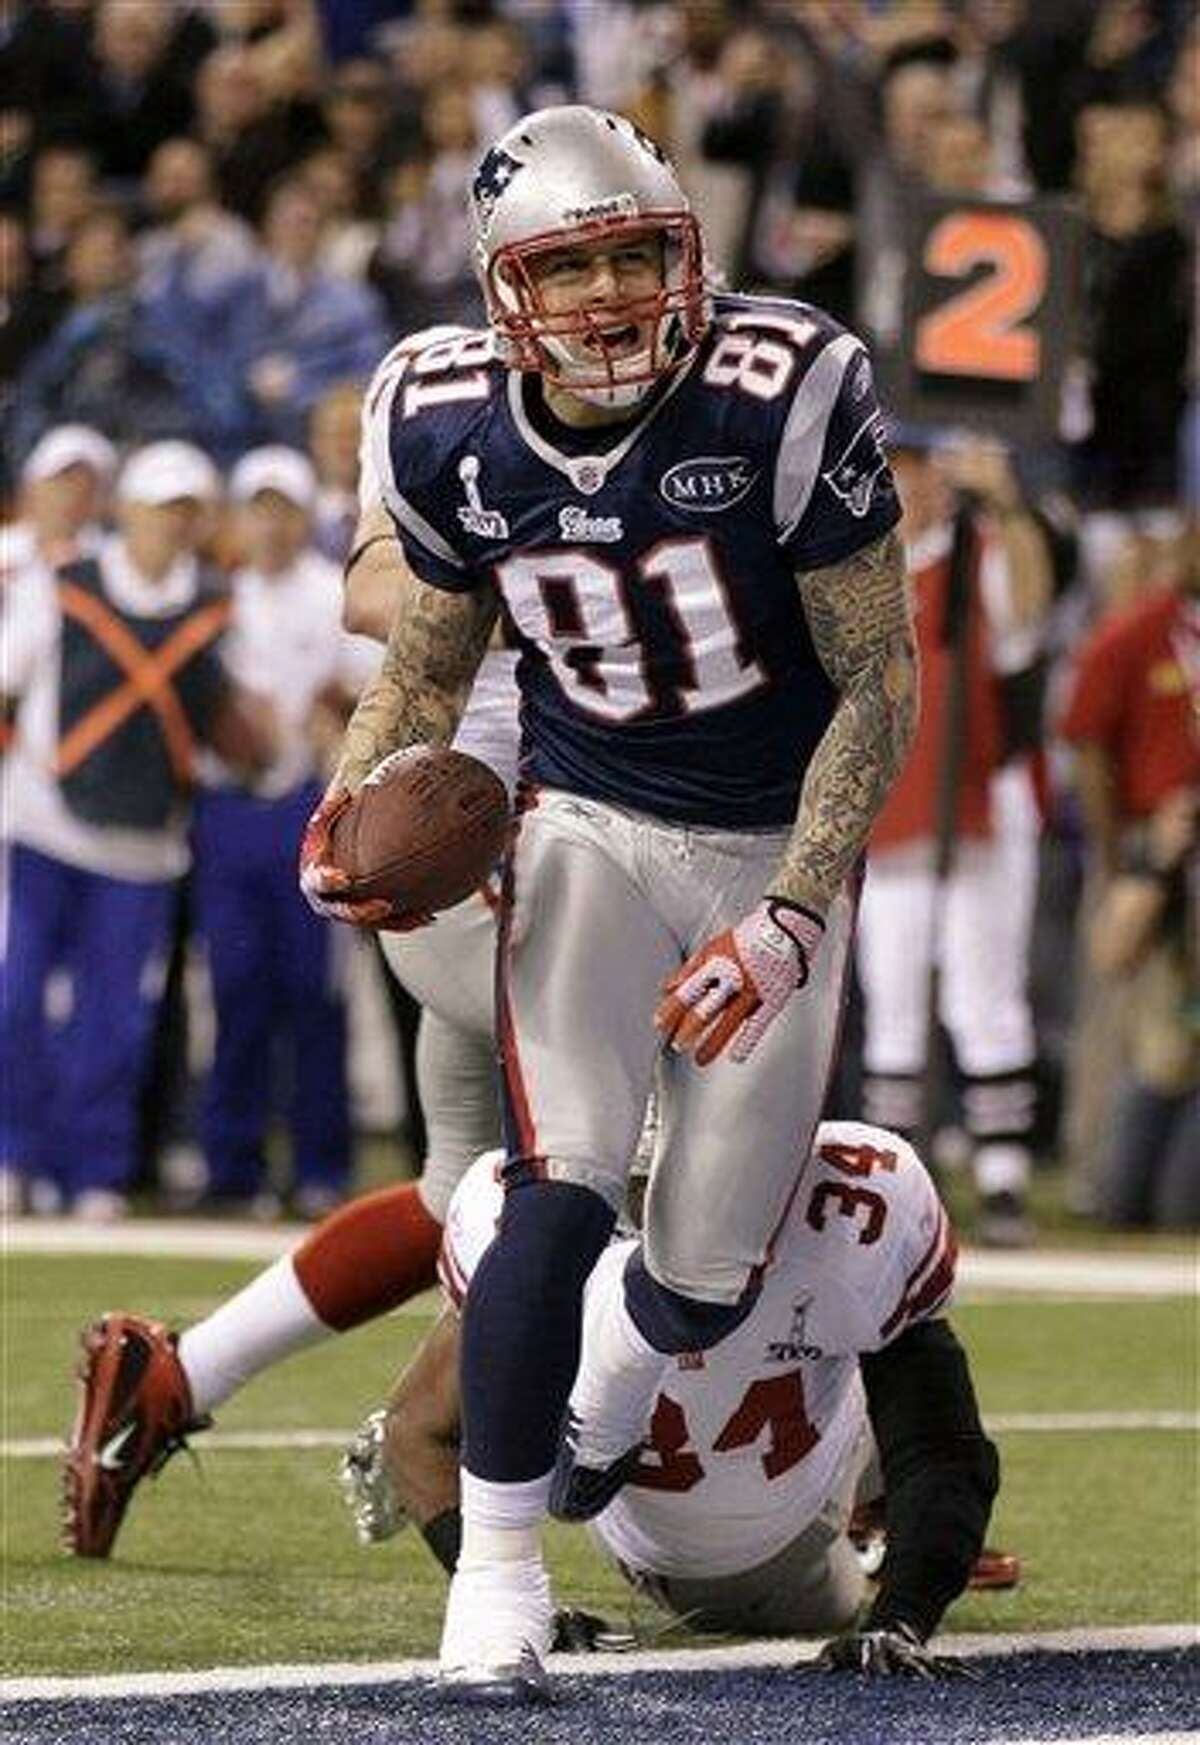 New England Patriots tight end Aaron Hernandez (81) reacts after catching a 12-yard touchdown pass during the second half of the NFL Super Bowl XLVI football game against the New York Giants, Sunday, Feb. 5, 2012, in Indianapolis. (AP Photo/Marcio Jose Sanchez)